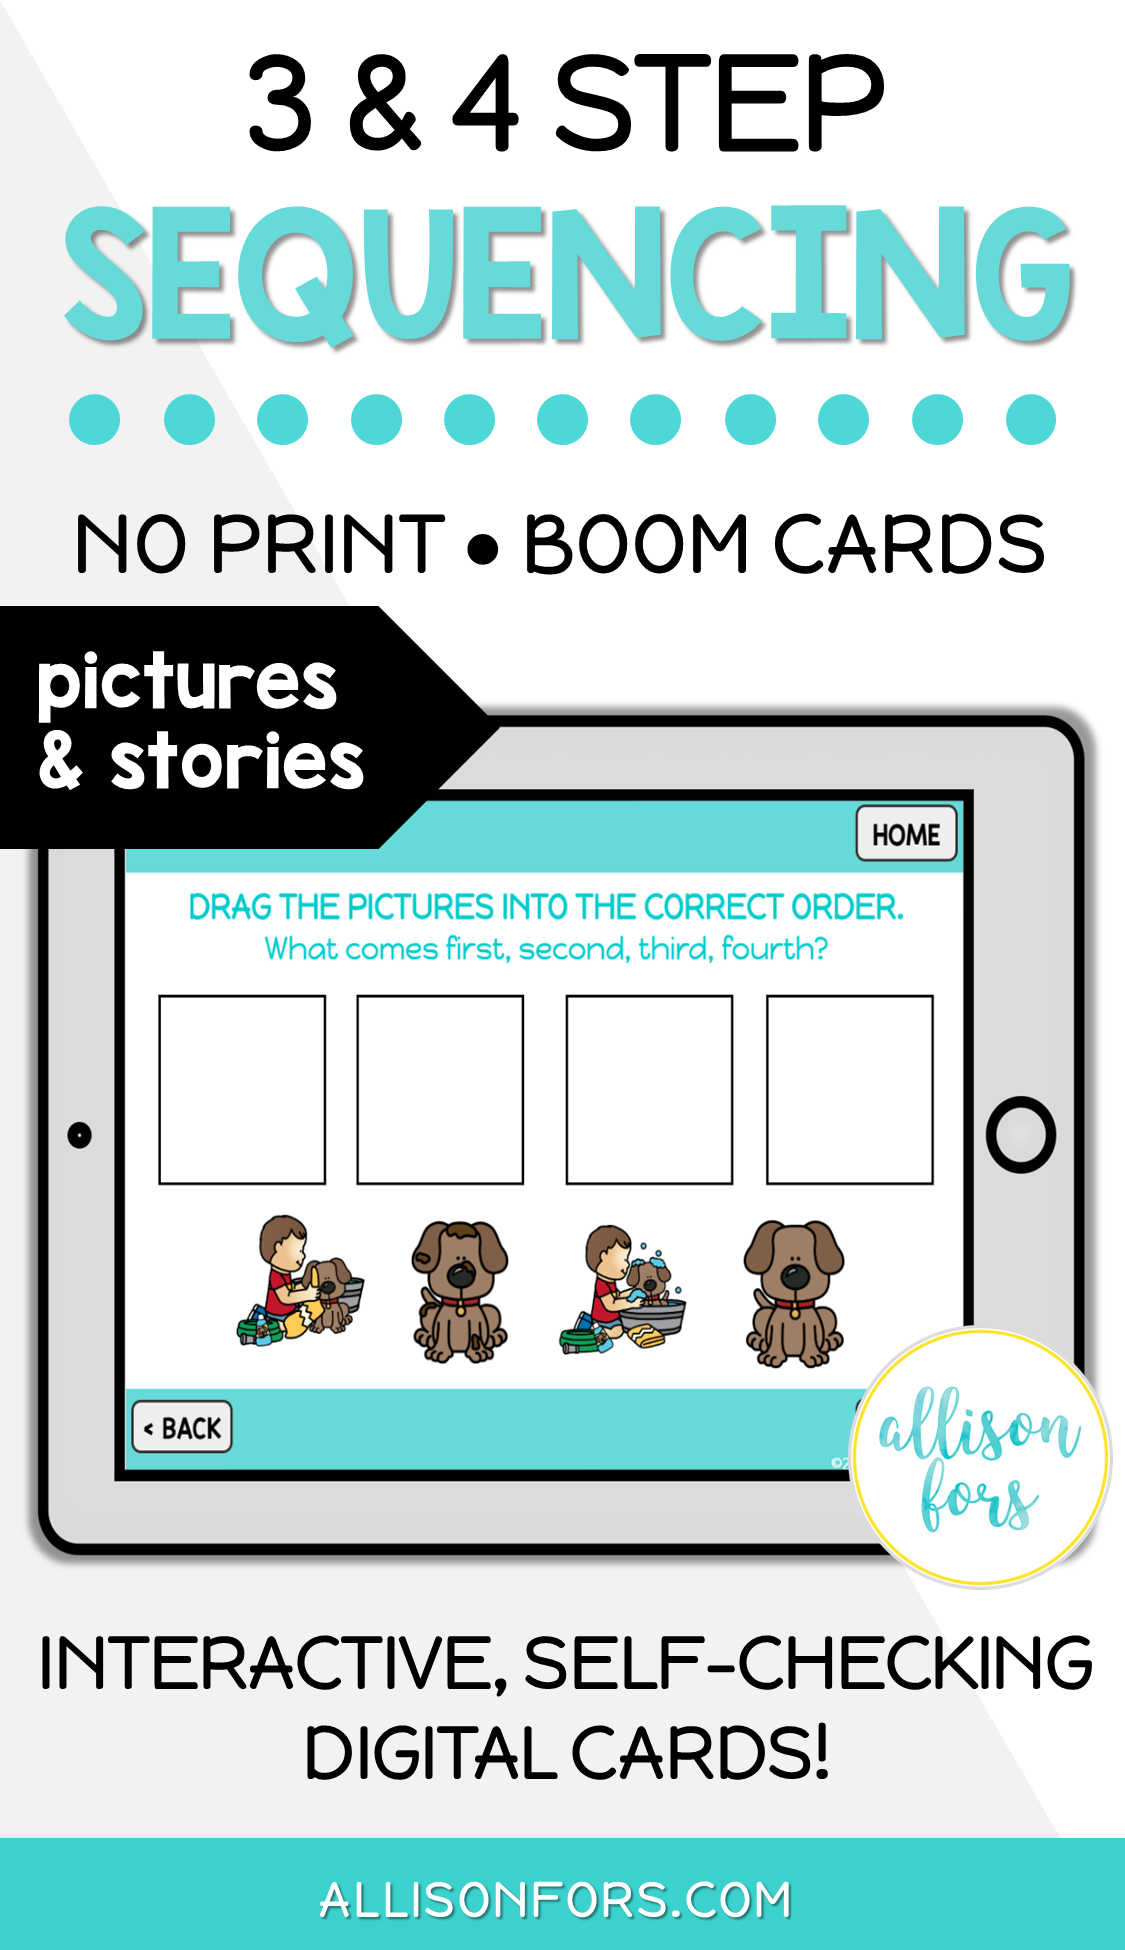 3 4 Step Sequencing No Print Boom Cards